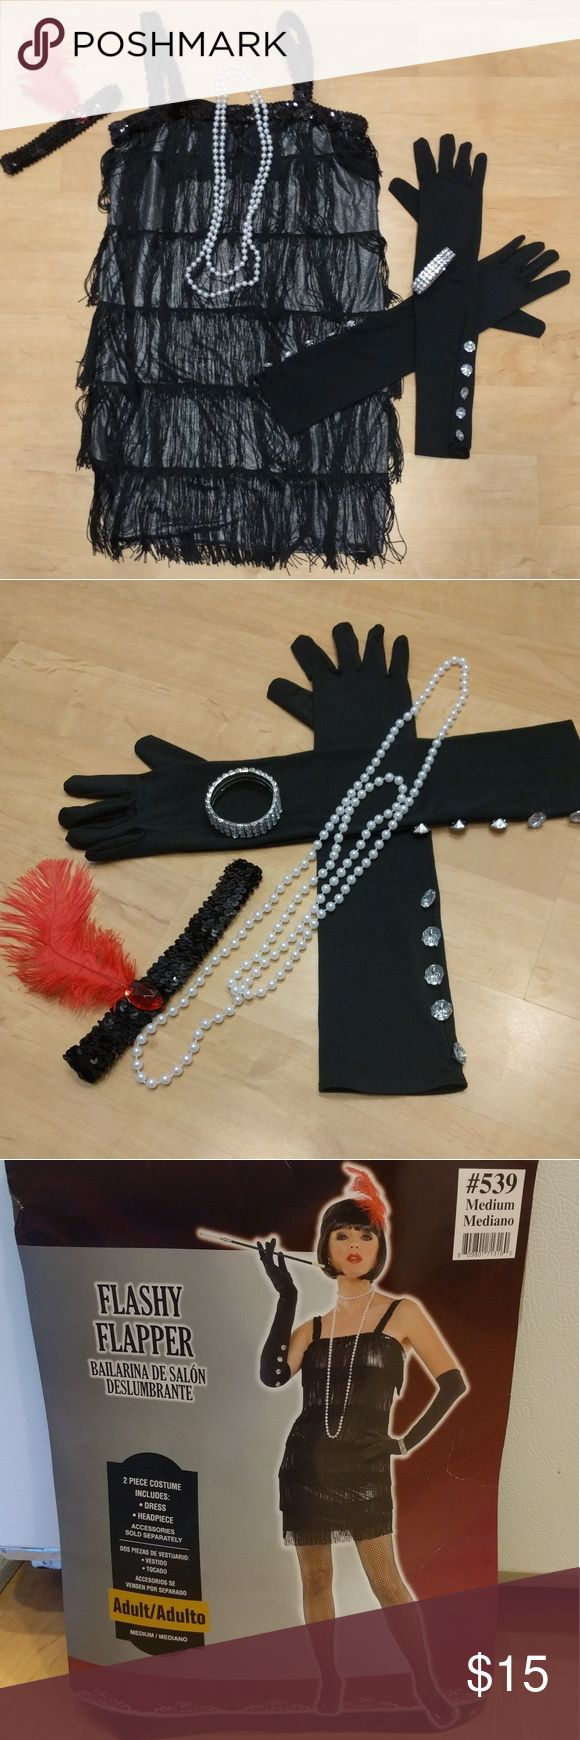 Flashy Flapper Girl Costume Worn only once!! Costume comes with dress, headpieces, gloves, bead necklace and rhinestone bracelet. Size medium. See pictures for costume measurements. Other